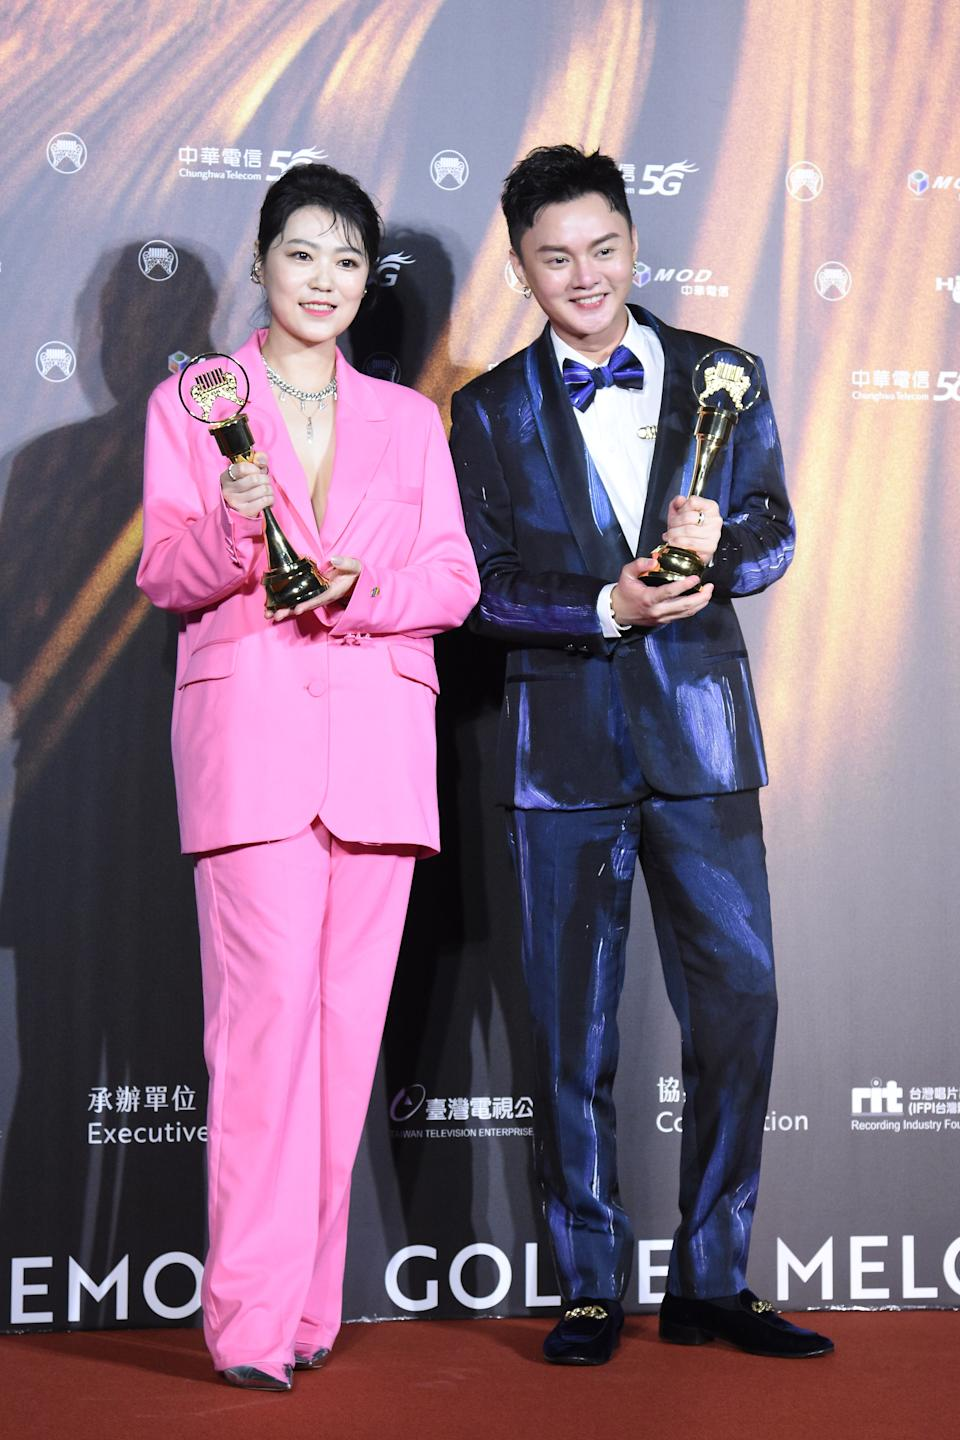 TAIPEI, CHINA - AUGUST 21: Singers Ya Wen Tsao (L) and Fu Kai Hsu pose with trophies backstage during the 32nd Golden Melody Awards on August 21, 2021 in Taipei, Taiwan of China. (Photo by Chen Lihong/VCG via Getty Images)